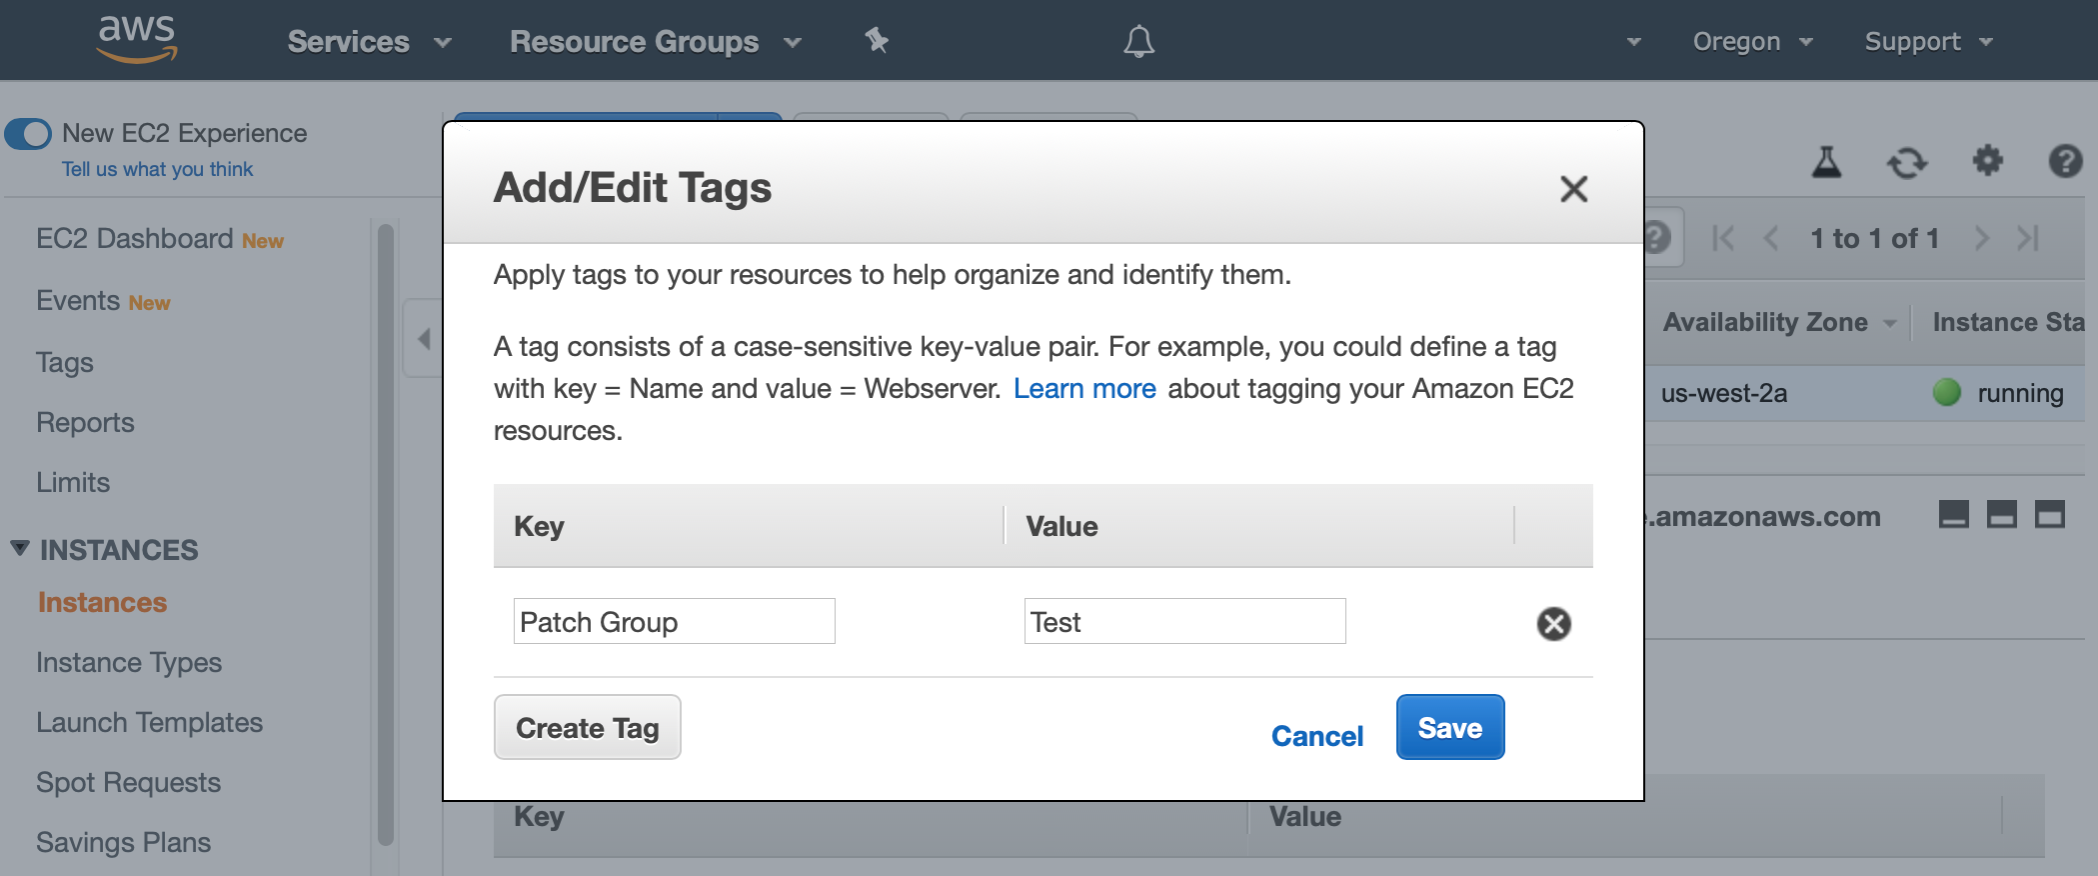 "AWS Management Console shows Add/Edit Tags dialog. The Key field is populated with ""Patch Group"" and the Value field is populated with ""Test""."